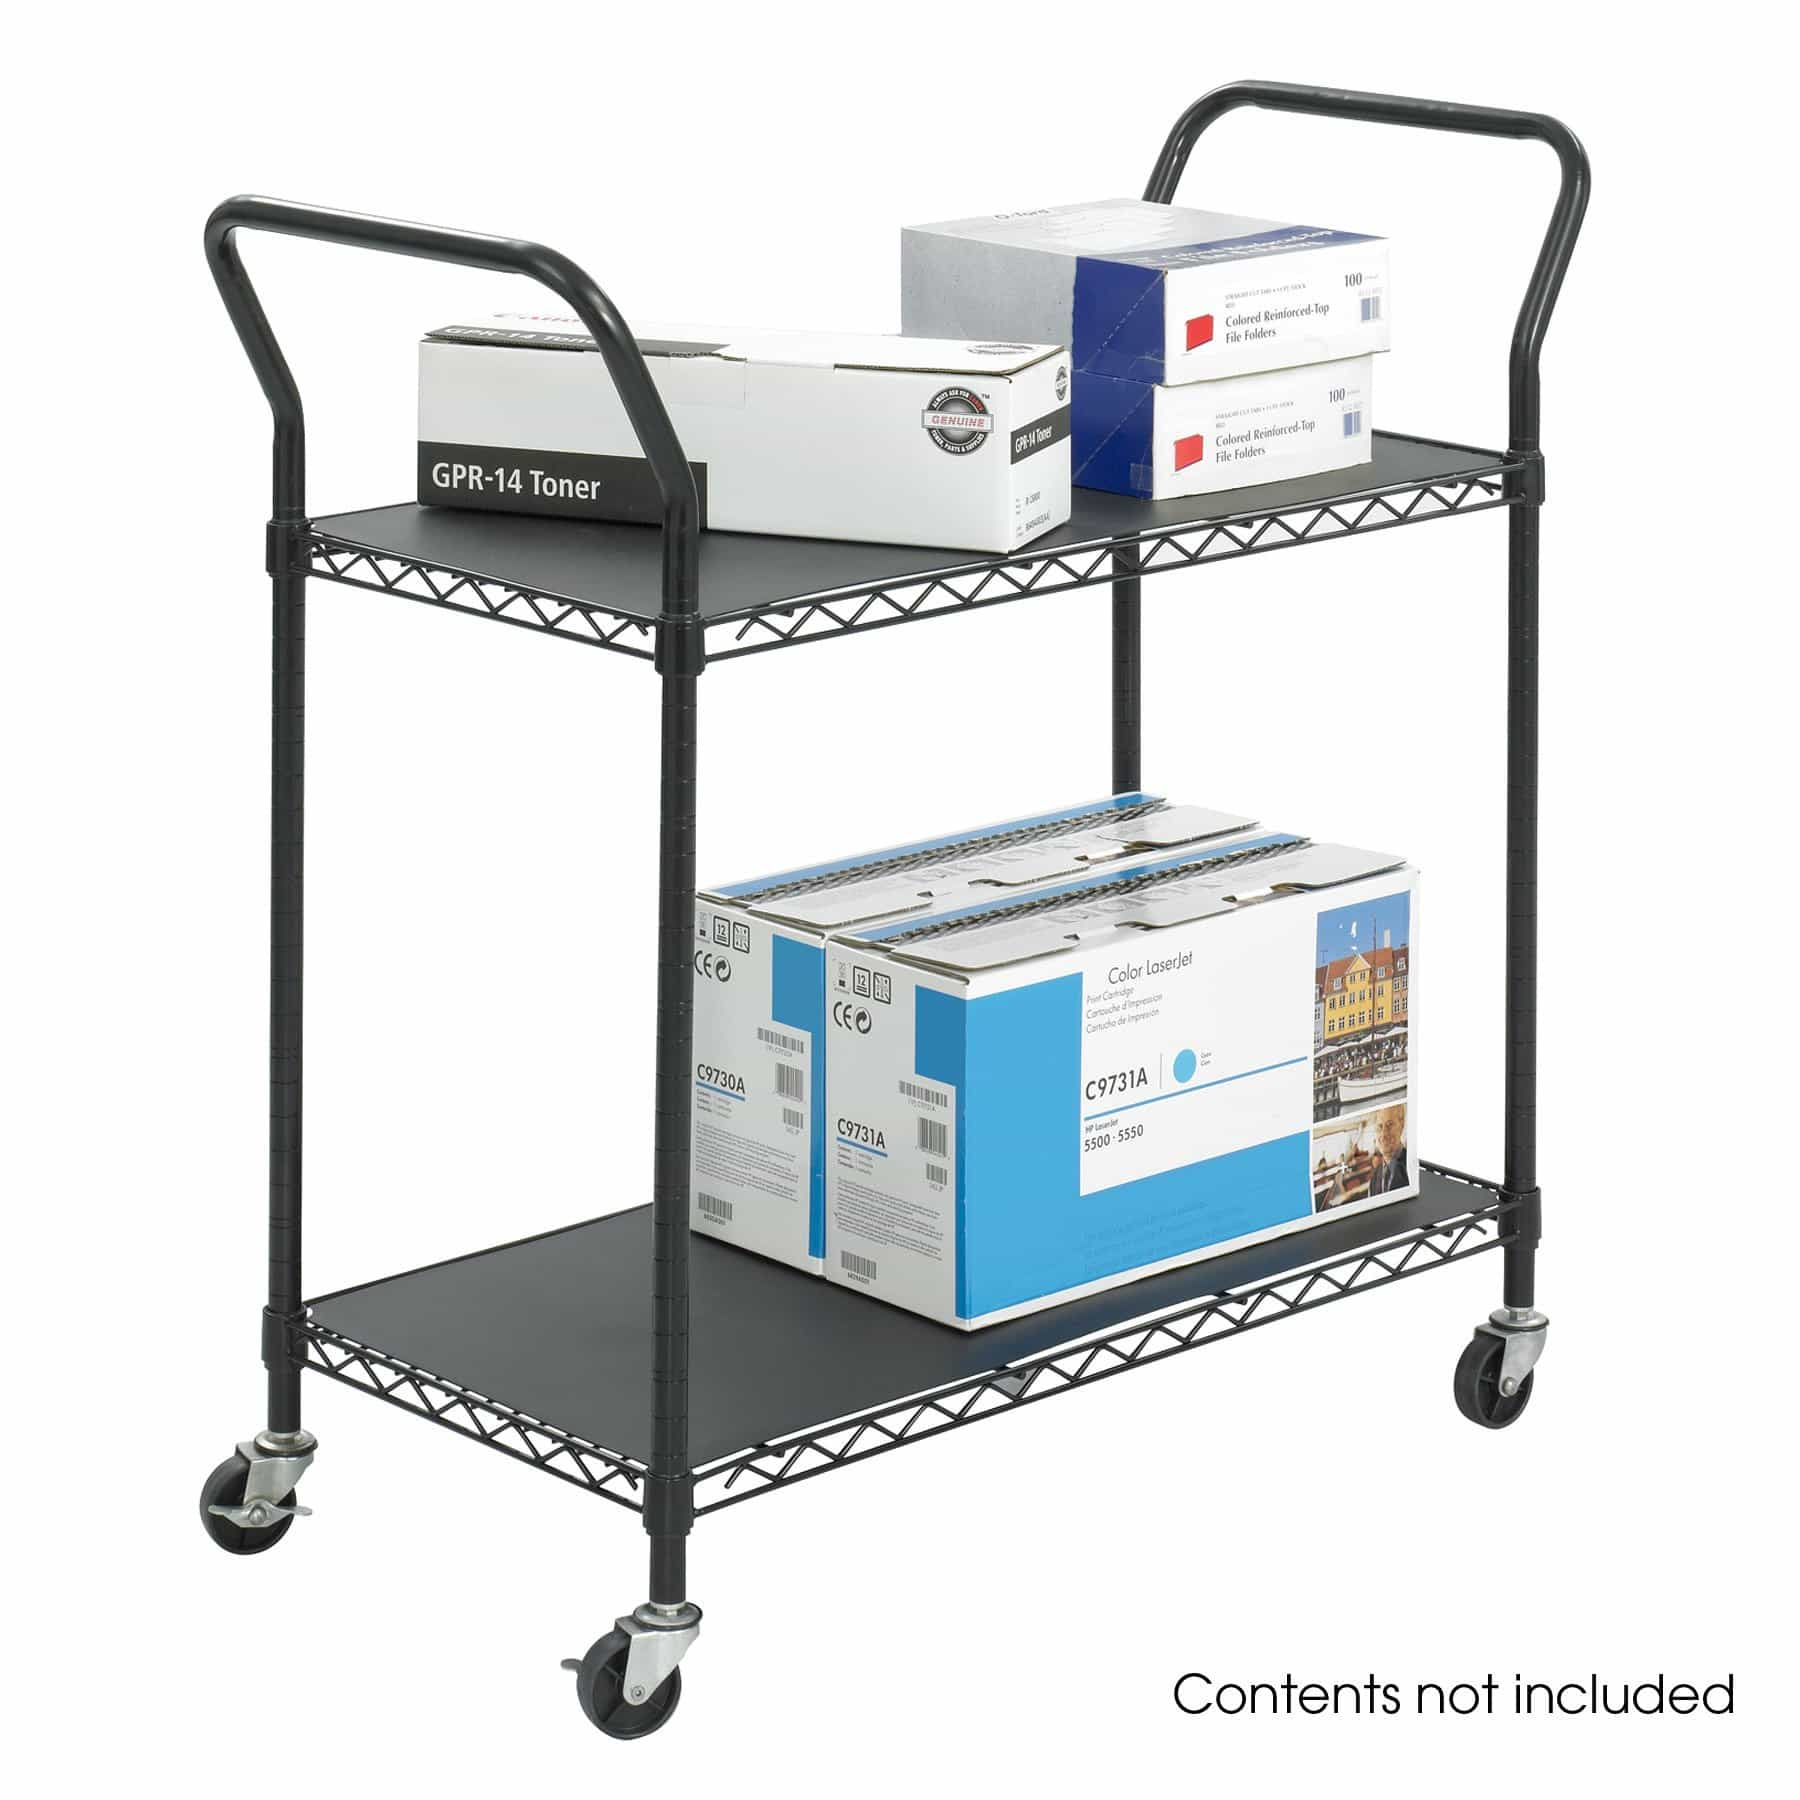 bedinhome - 5337BL Safco Black plastic shelf mobile Wire Utility Cart two adjustable shelves - Safco - Utility/Book Carts